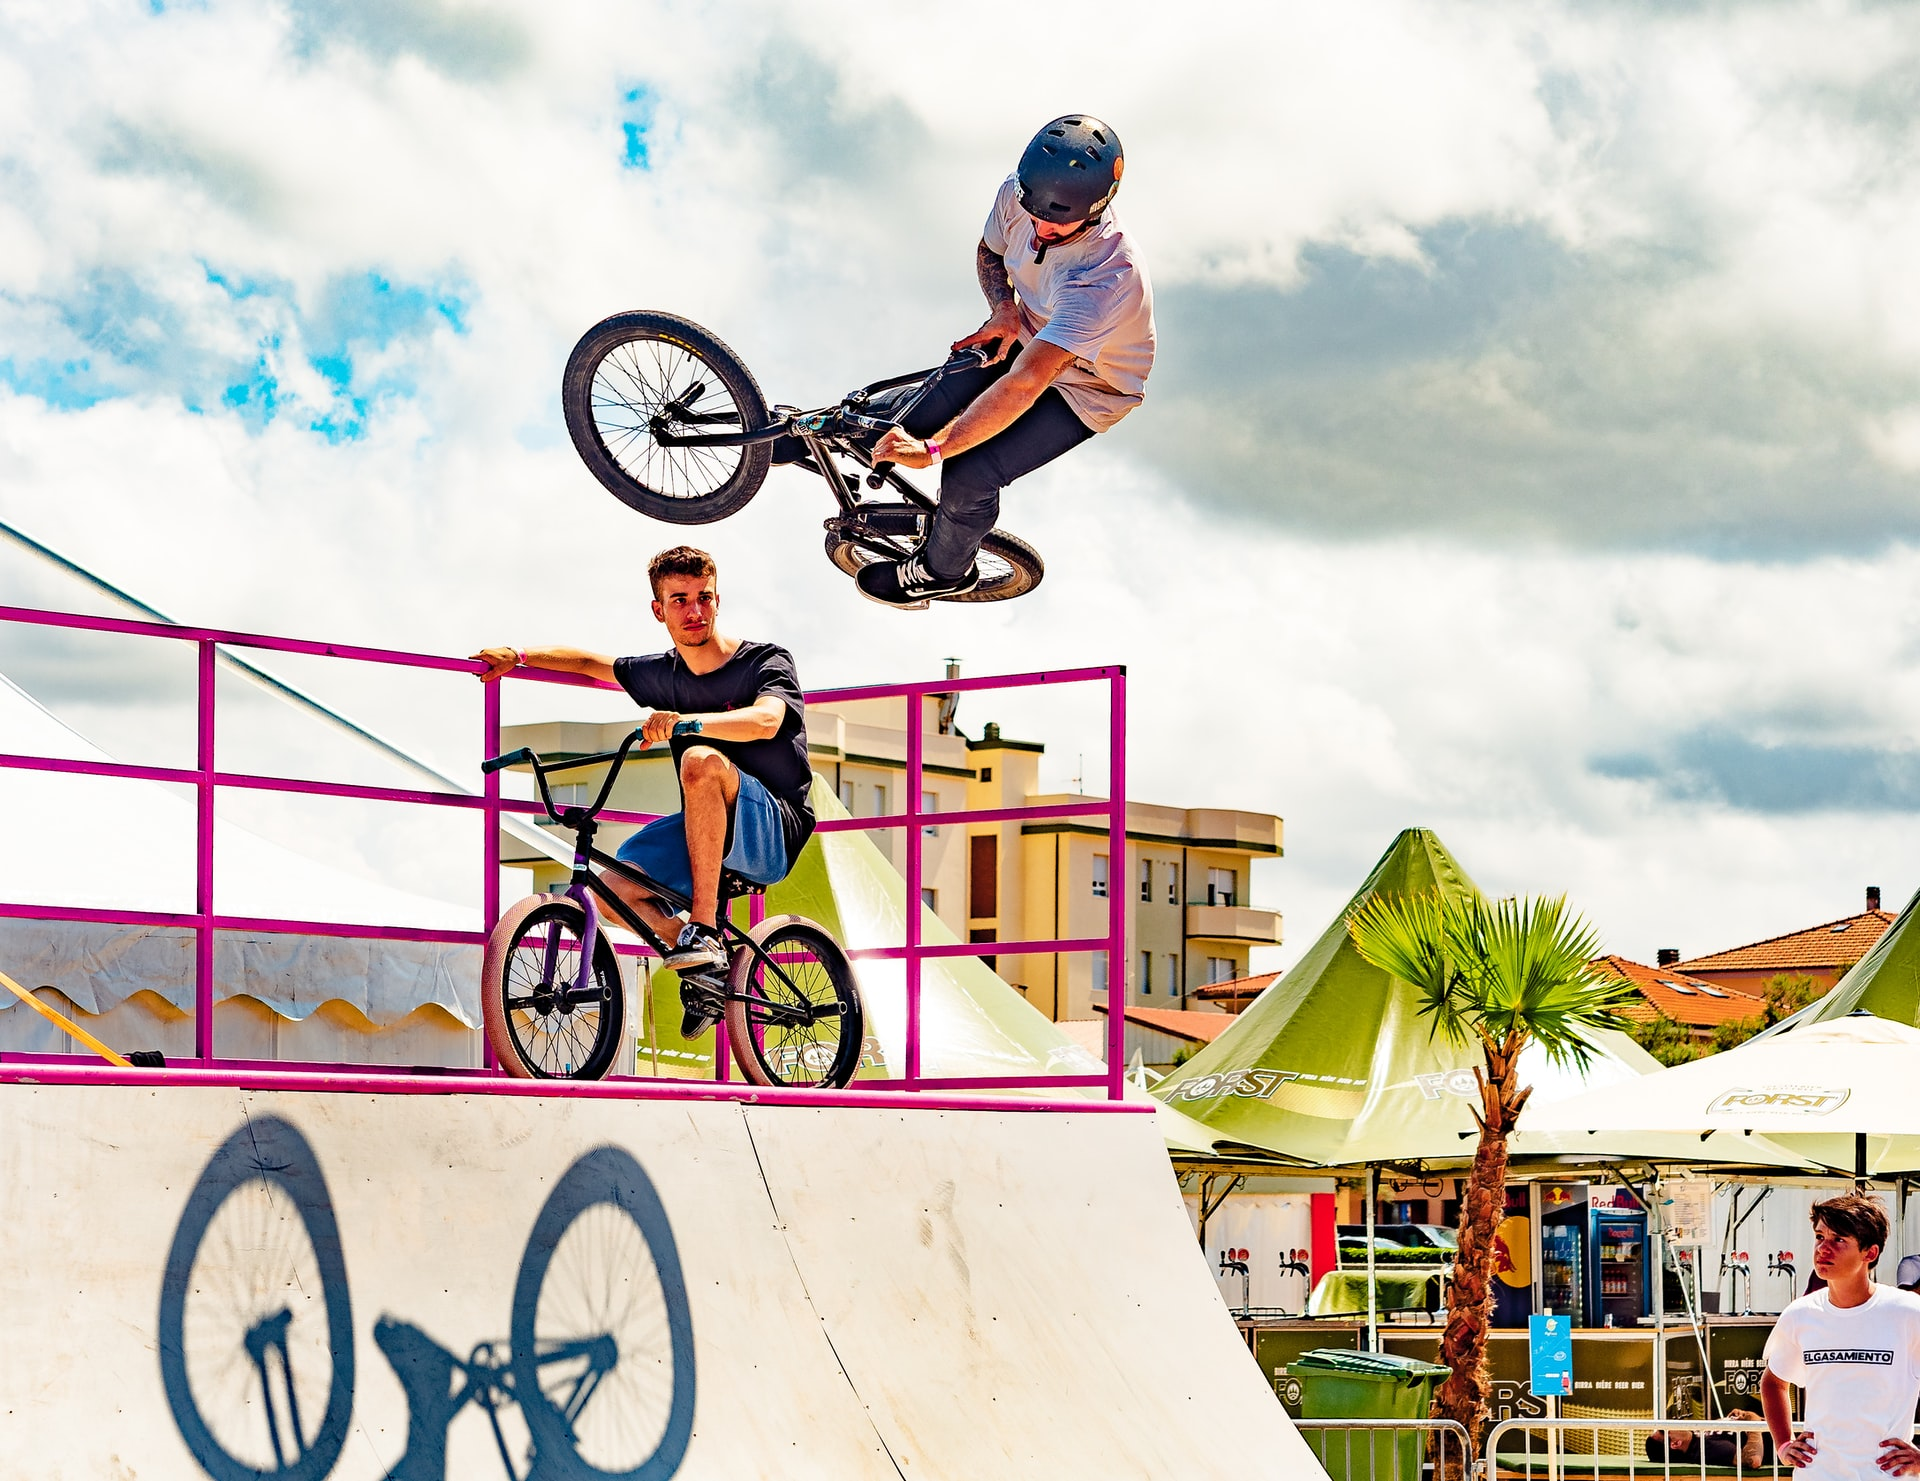 Best BMX Bikes for the Money: Reviews and Buyer's Guide